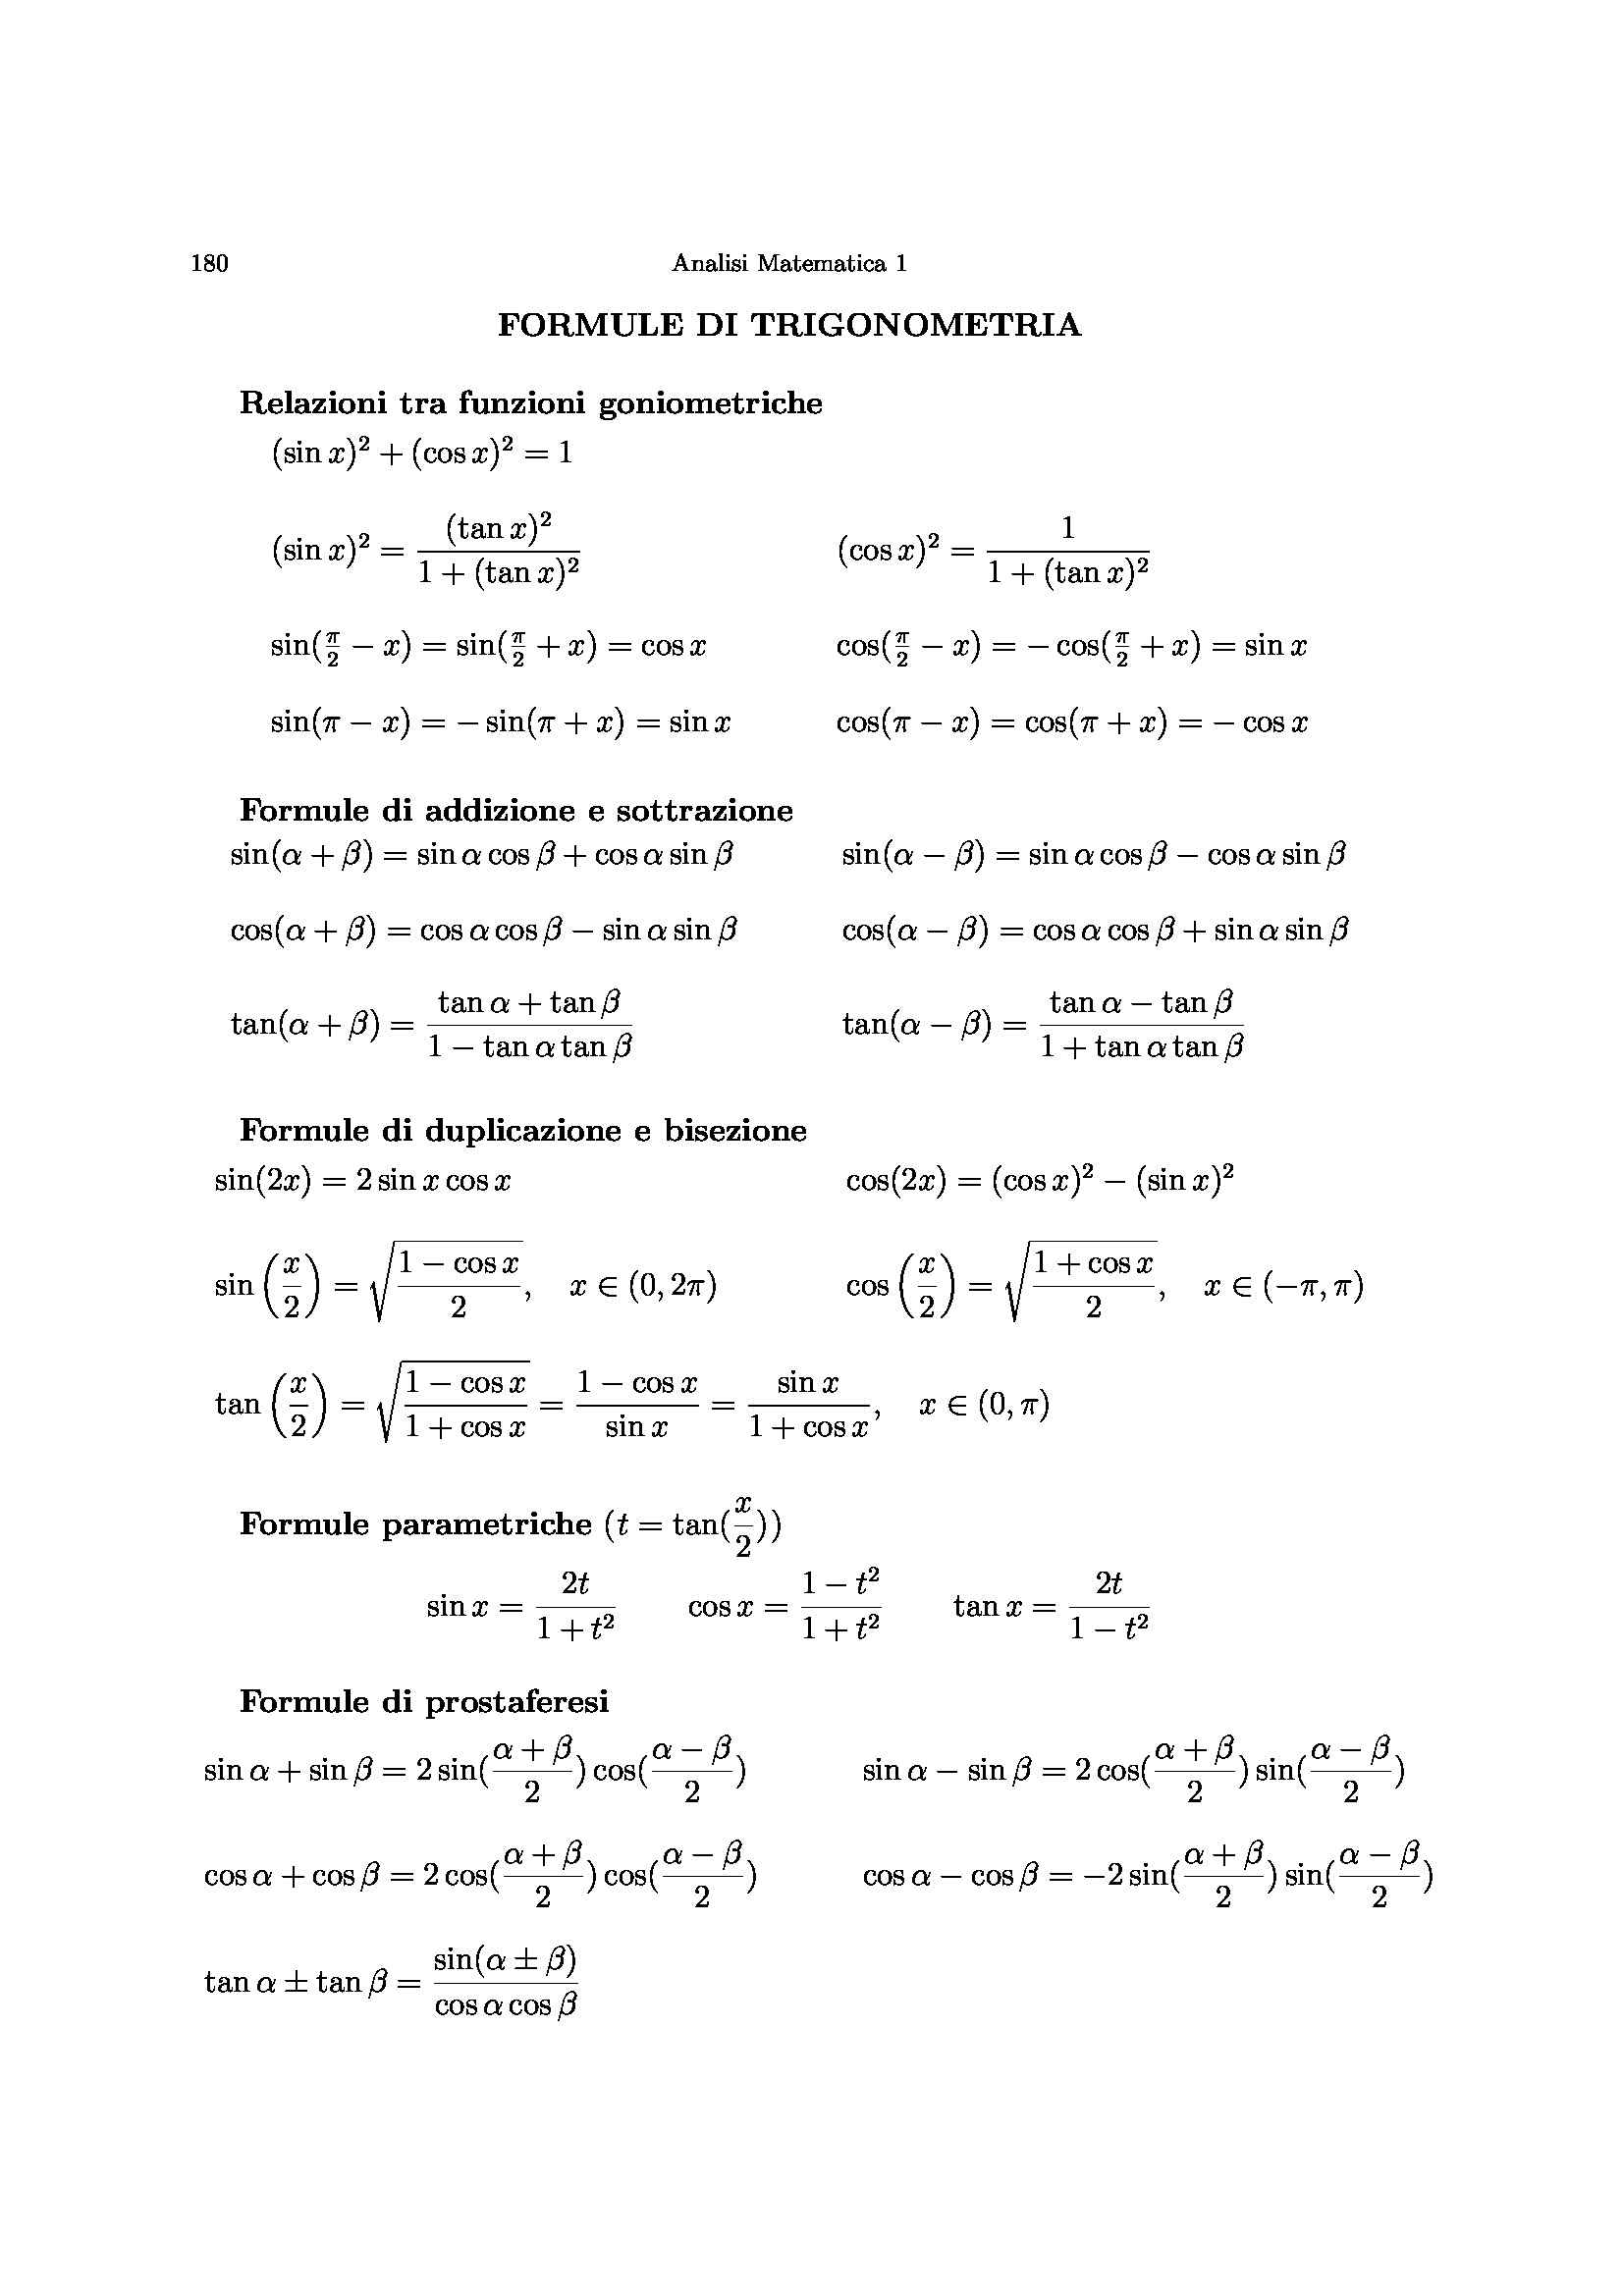 Formule analisi 1 Pag. 1